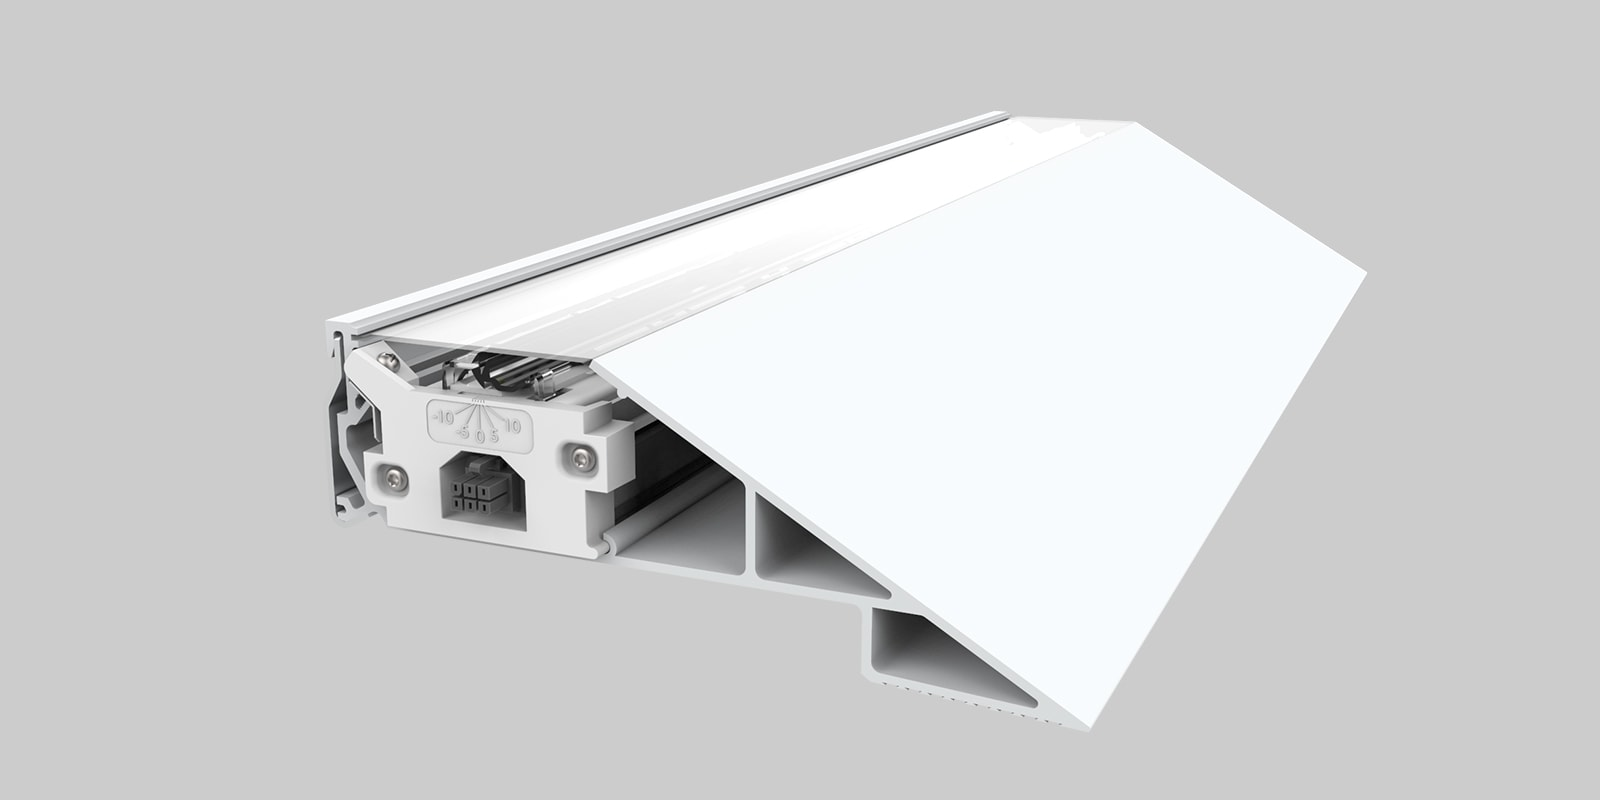 Two extrusion profiles each with two mounting options allow for versatile cove lighting installation